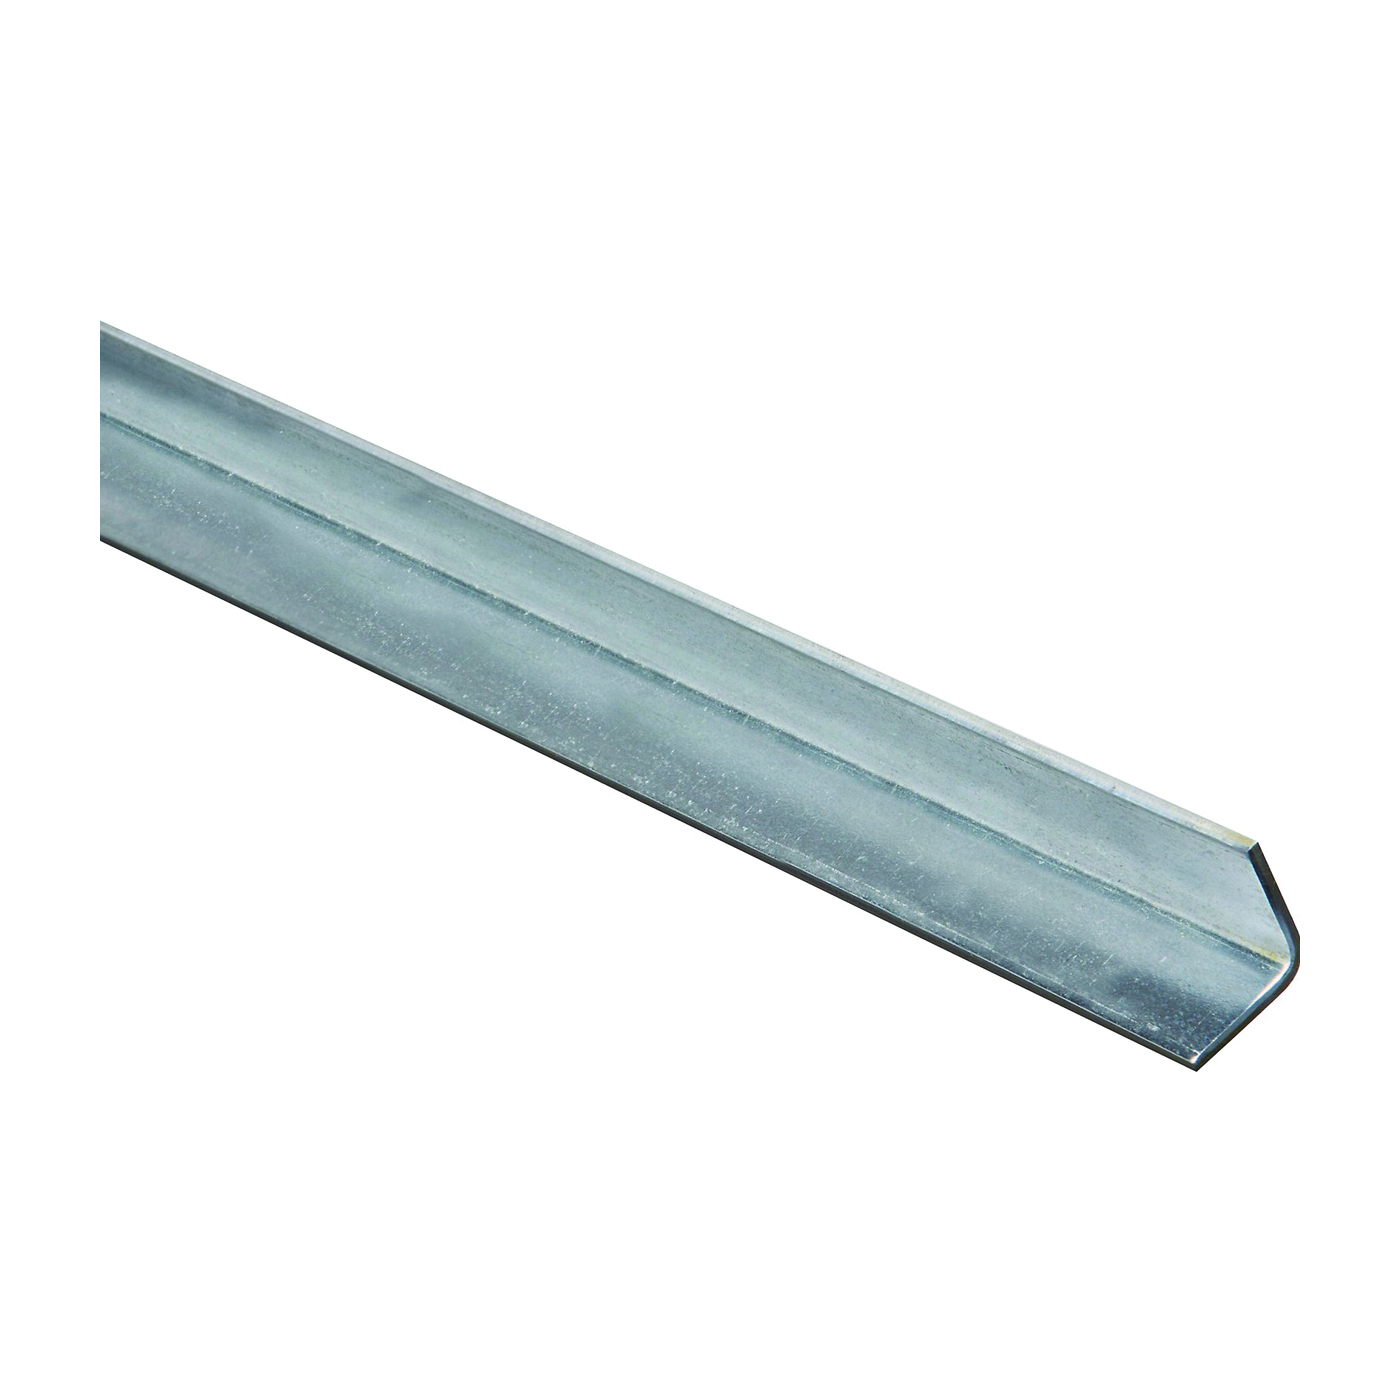 Picture of Stanley Hardware 4010BC Series 179937 Solid Angle, 1 in L Leg, 48 in L, 0.12 in Thick, Galvanized Steel